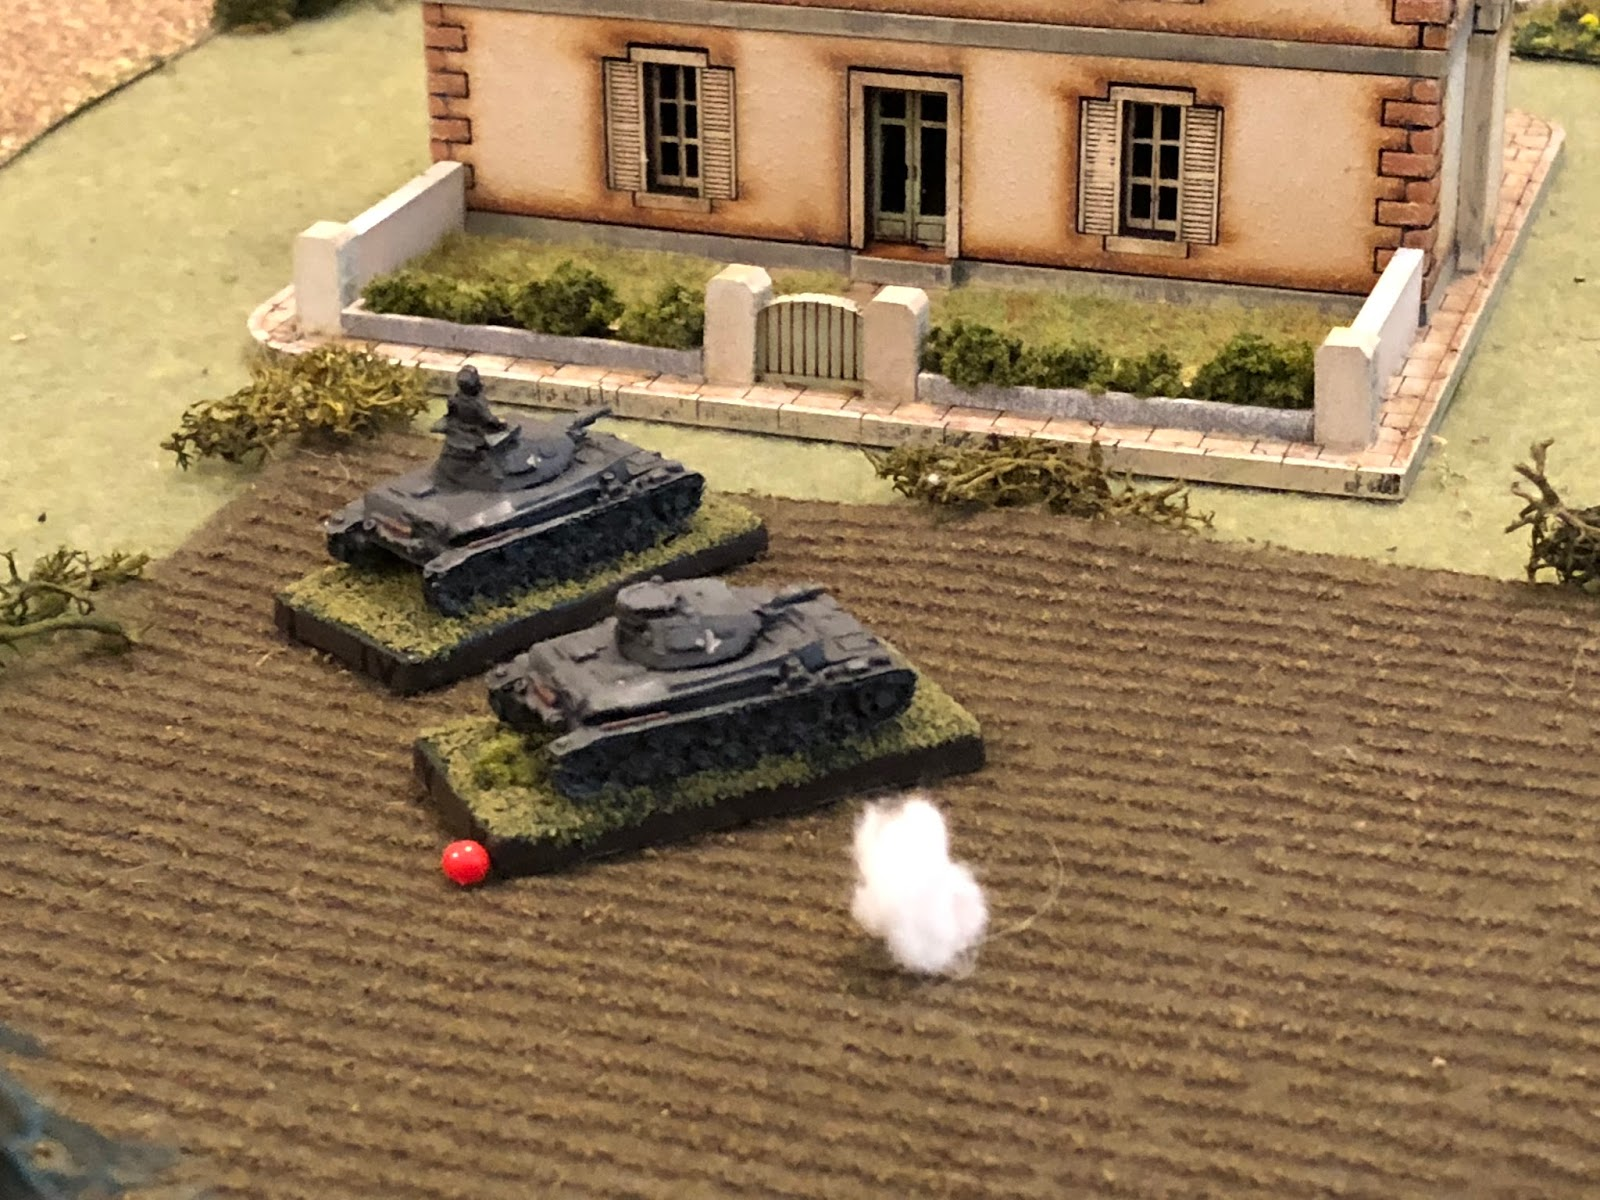 The enemy shell plows the cabbage field at Sgt Kapp's right flank.